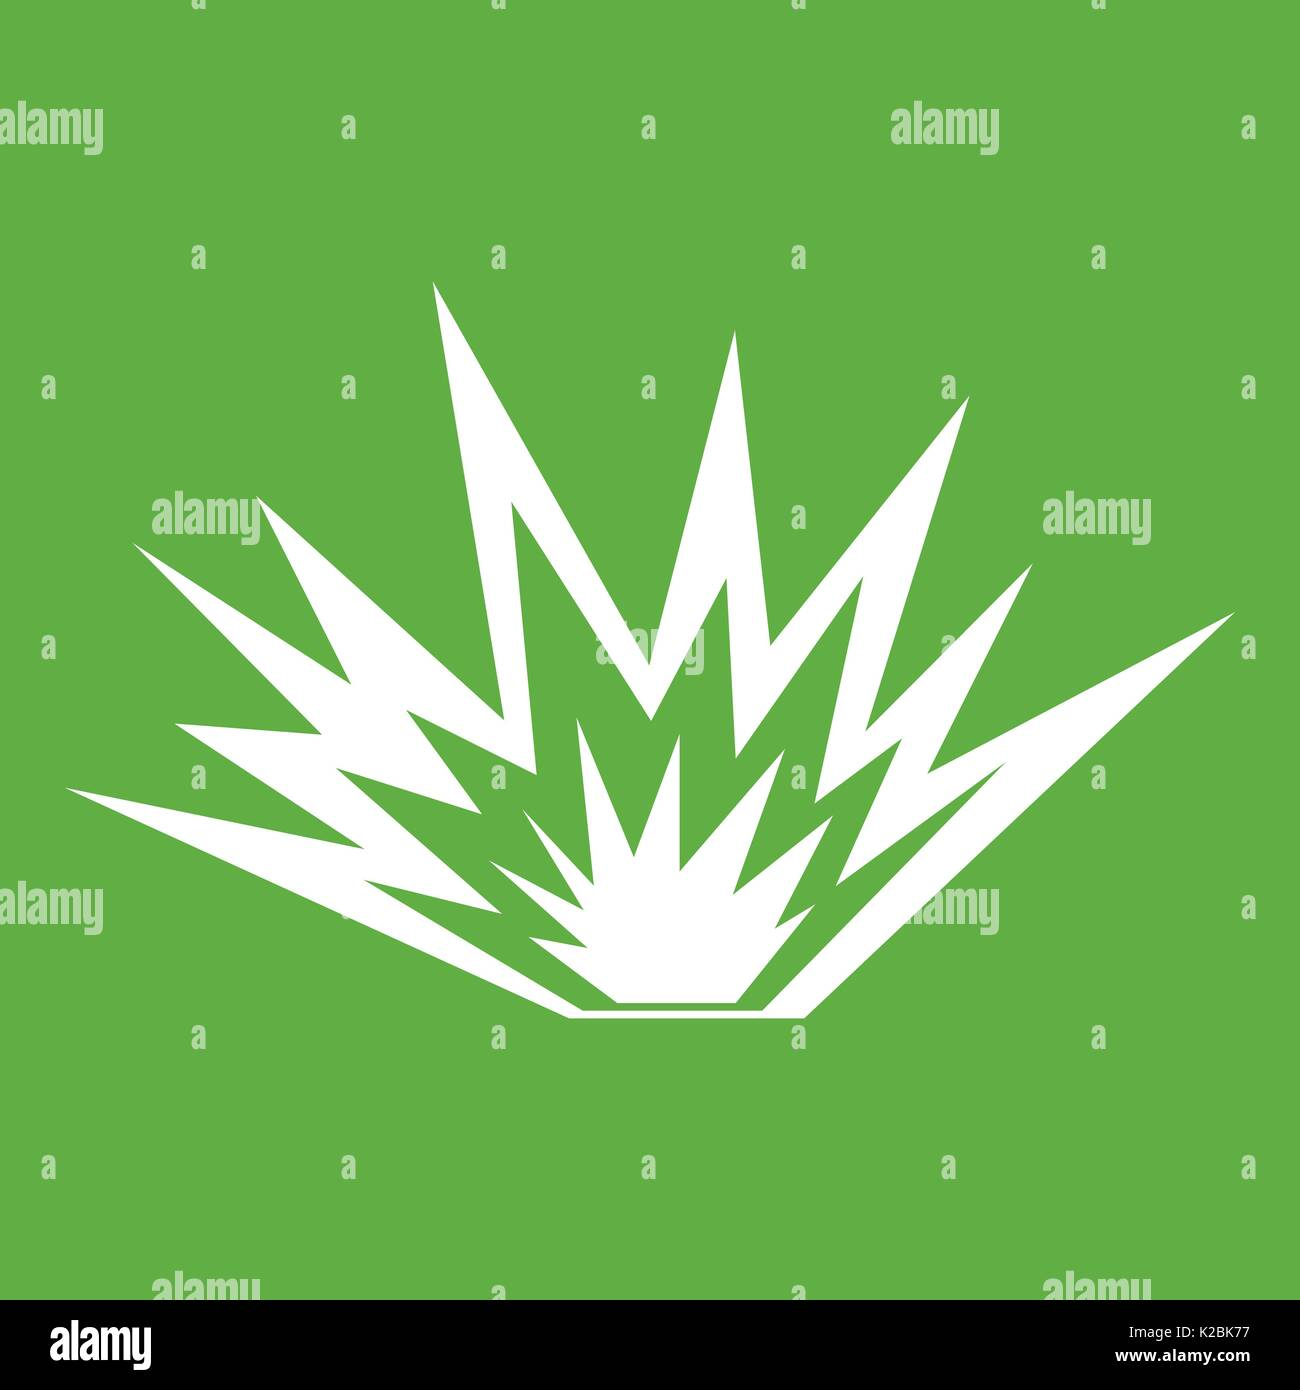 Nuclear explosion icon green - Stock Image